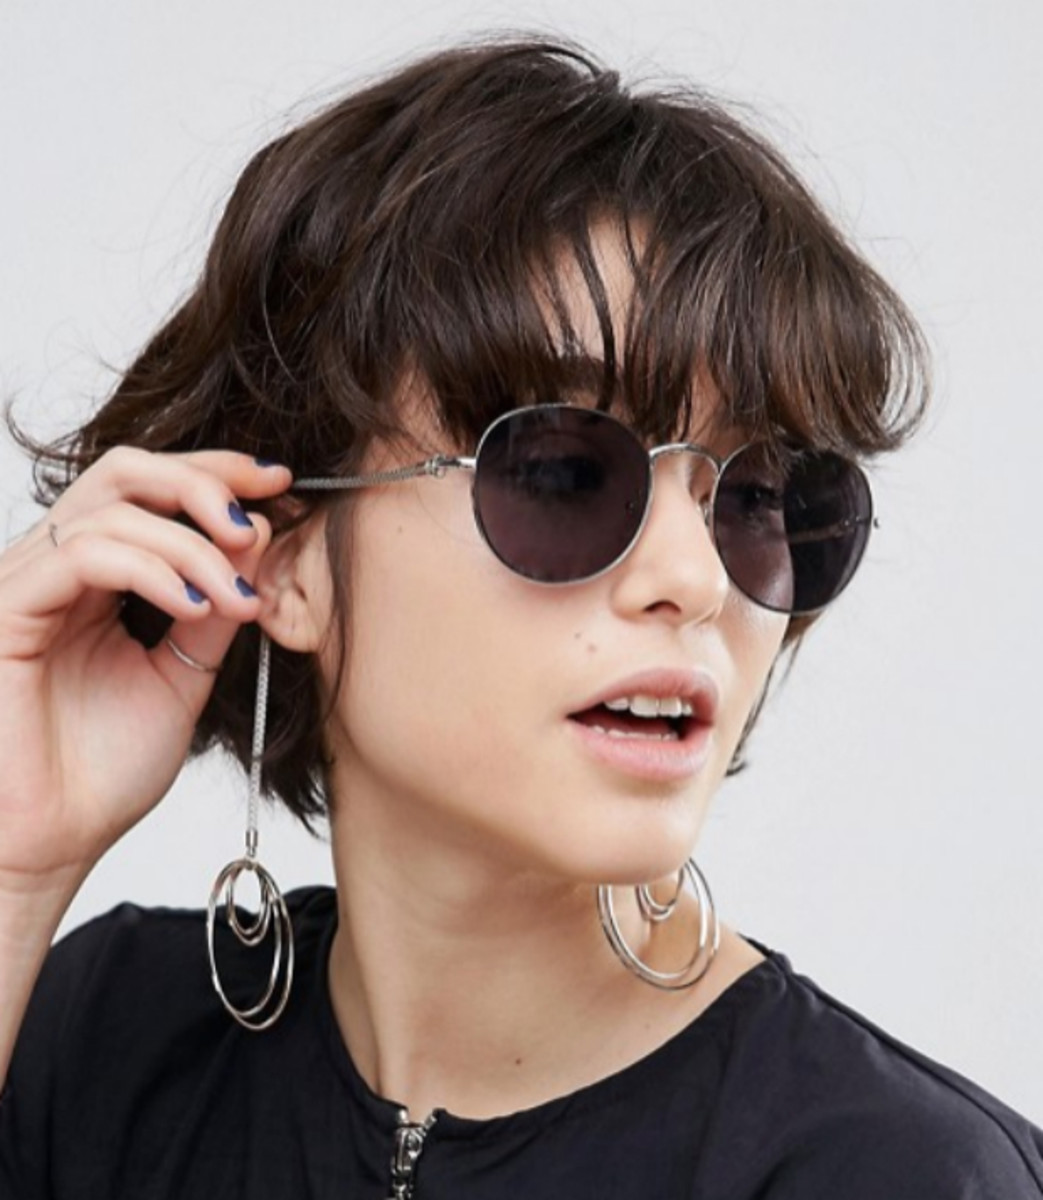 ASOS round sunglasses with hoop earrings, $20.50 (from $26), available at ASOS.